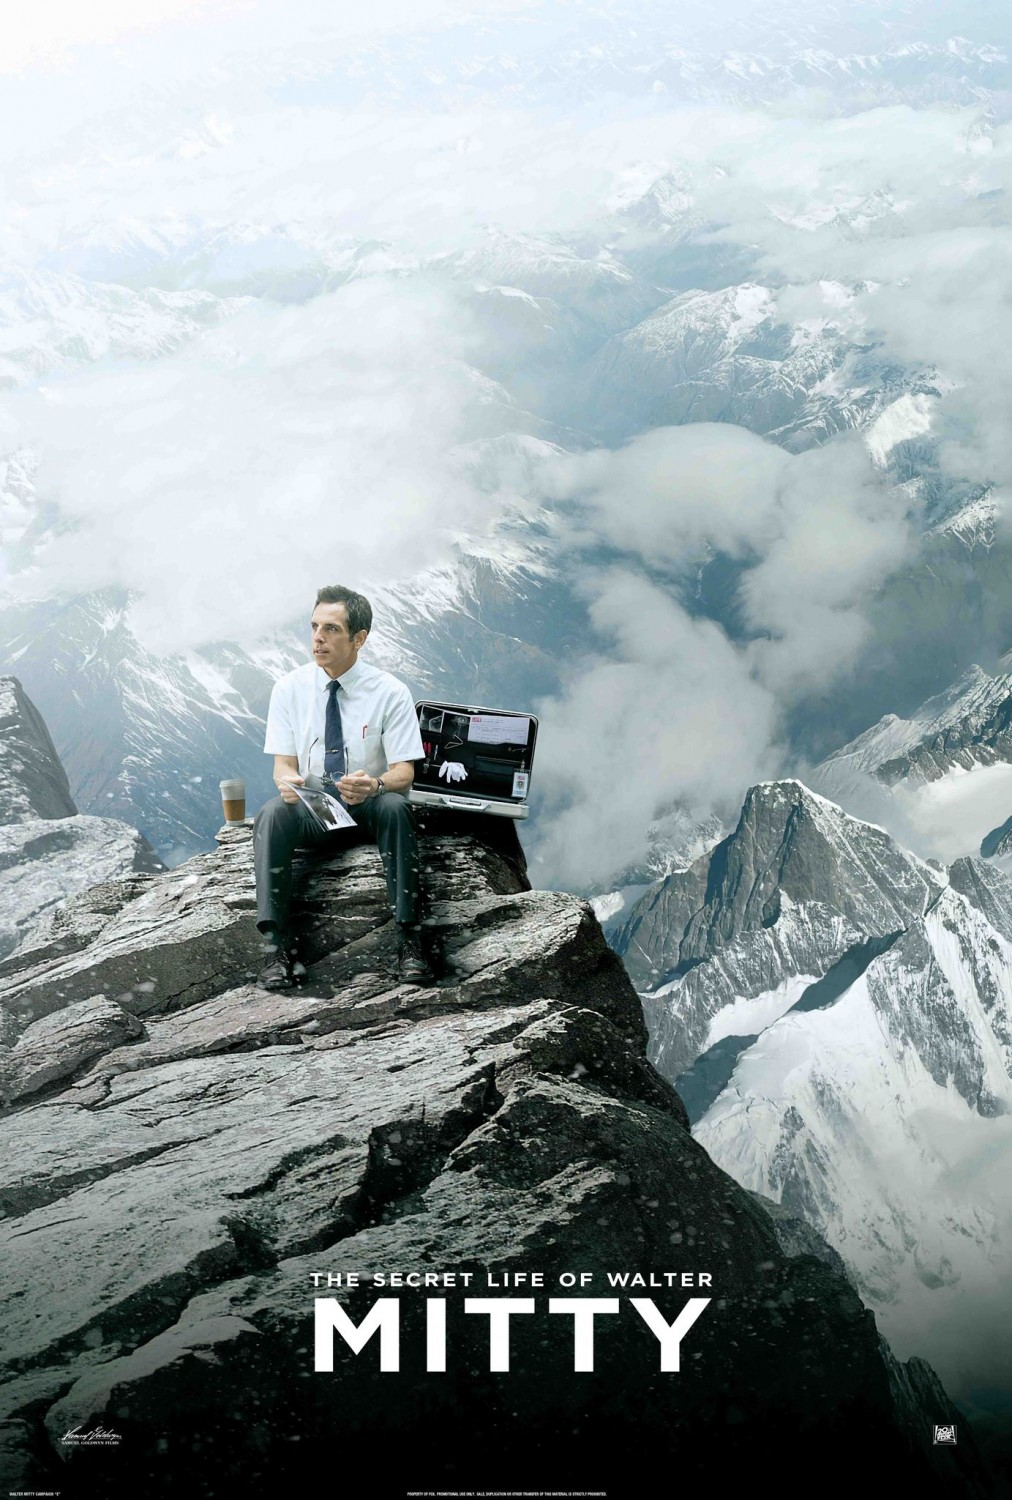 Extra Large Movie Poster Image for The Secret Life of Walter Mitty (#4 of 10)